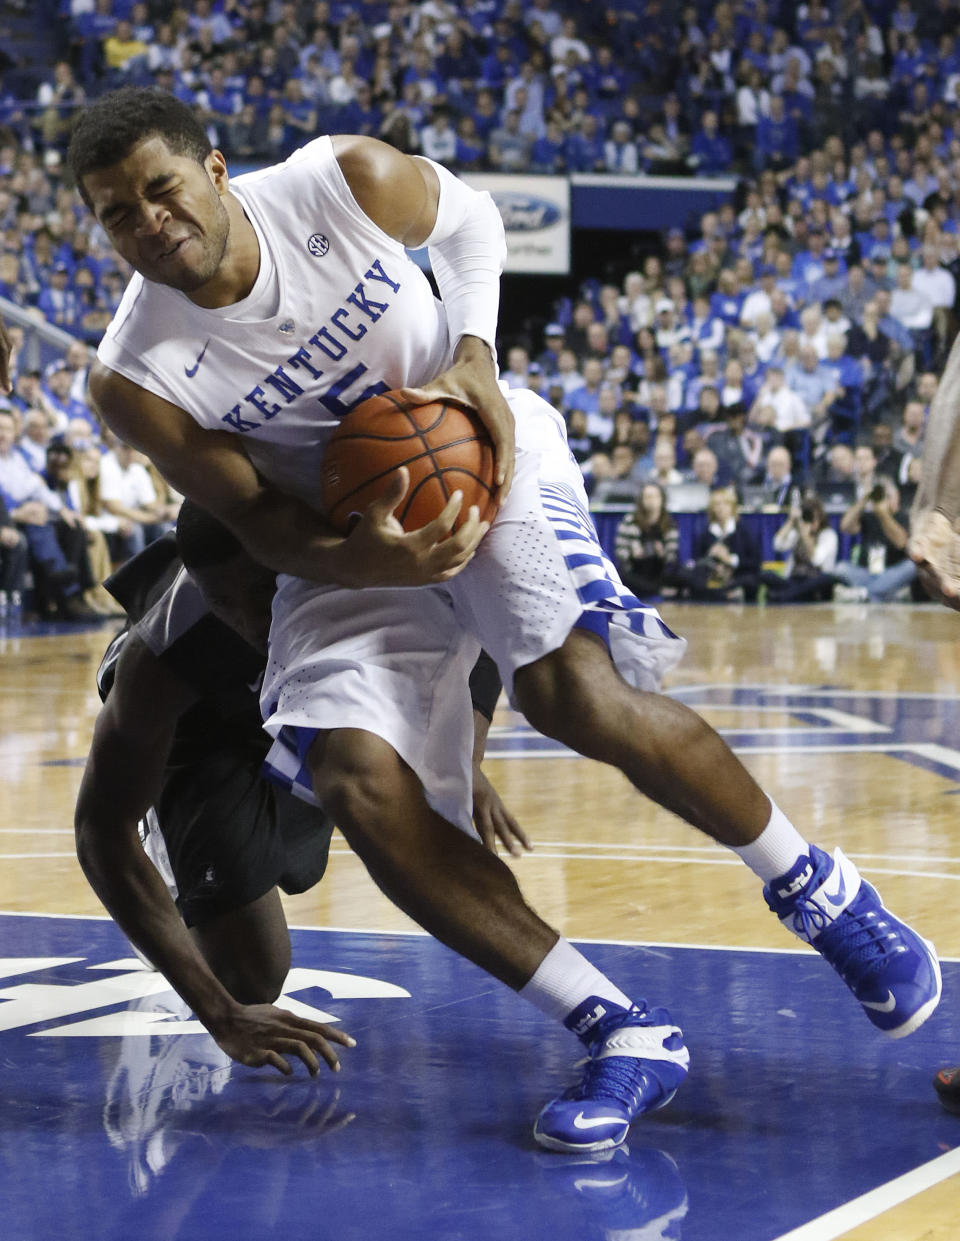 Kentucky's Andrew Harrison, top, is fouled by Providence's Kris Dunn during the second half of an NCAA college basketball game, Sunday, Nov. 30, 2014, in Lexington, Ky. Kentucky won 58-38. (AP Photo/James Crisp)